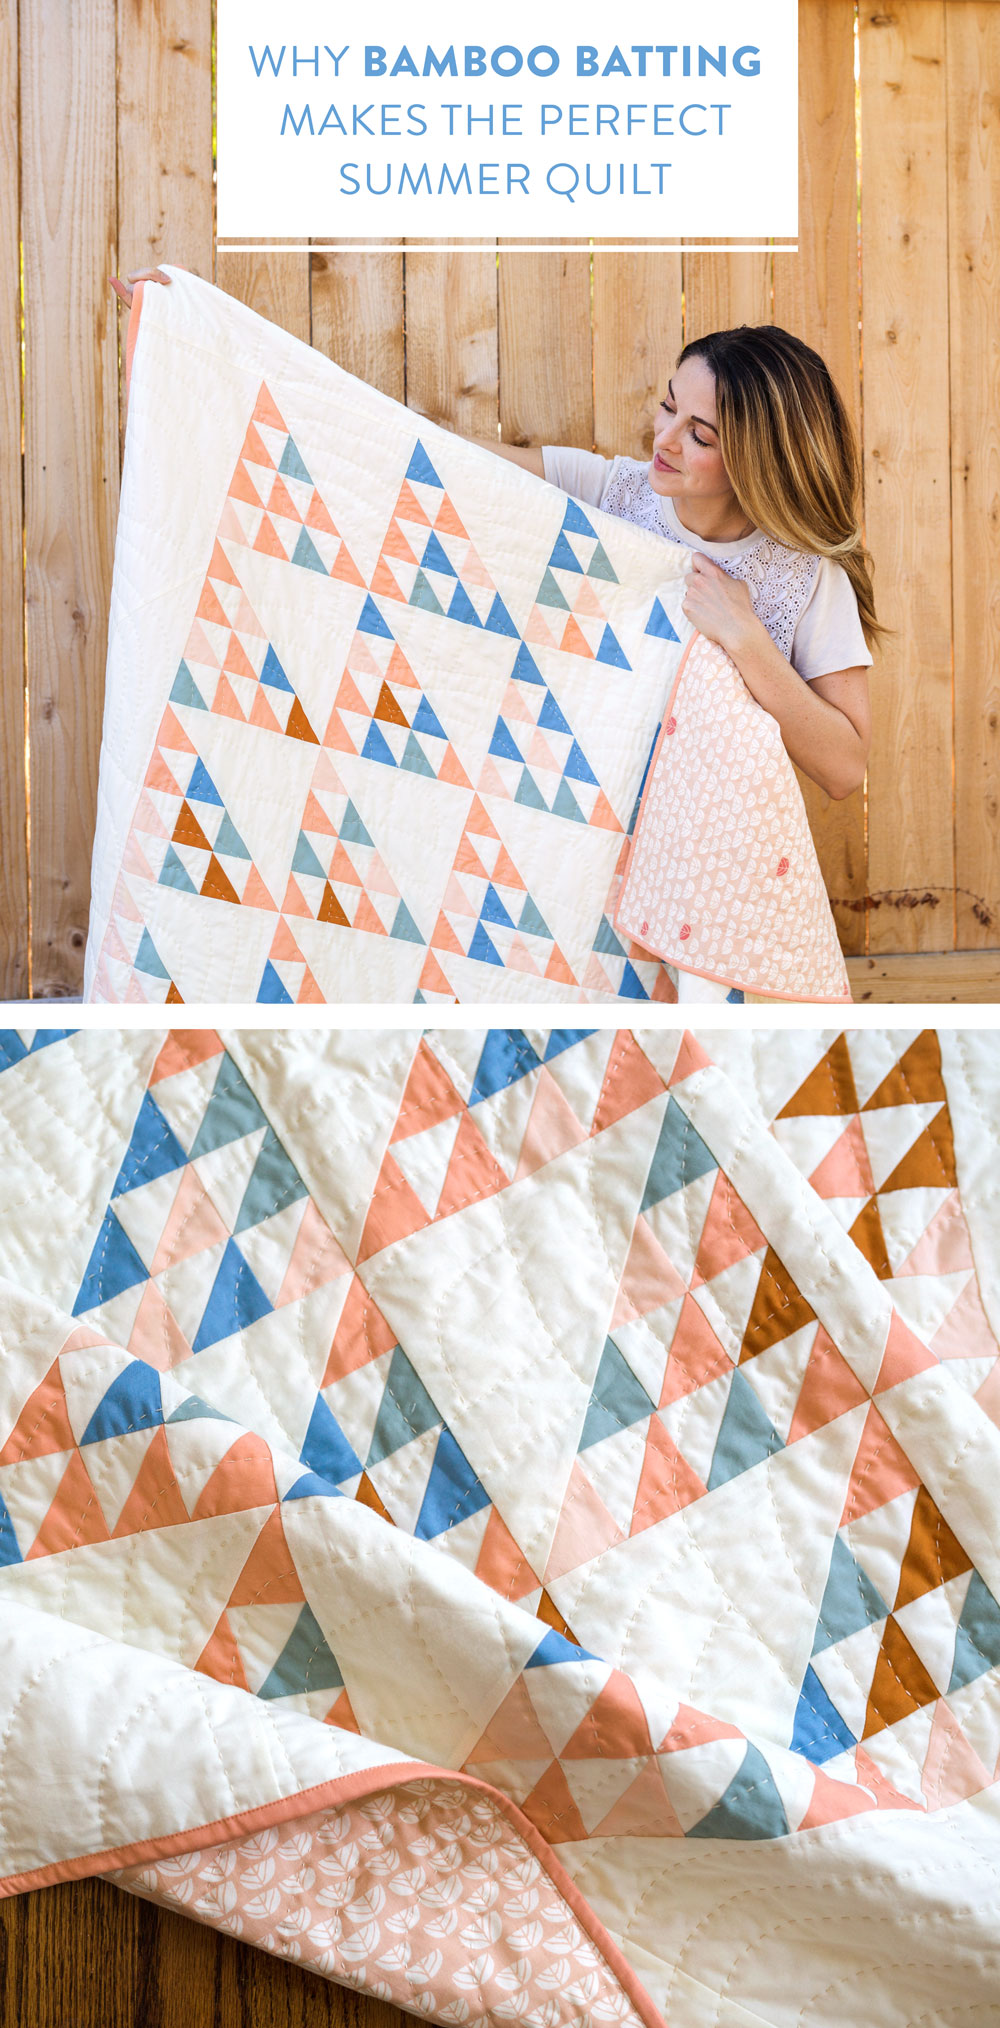 Bamboo batting is the perfect summer quilt batting! It's lightweight, strong, breathable and has a beautifully soft drape.